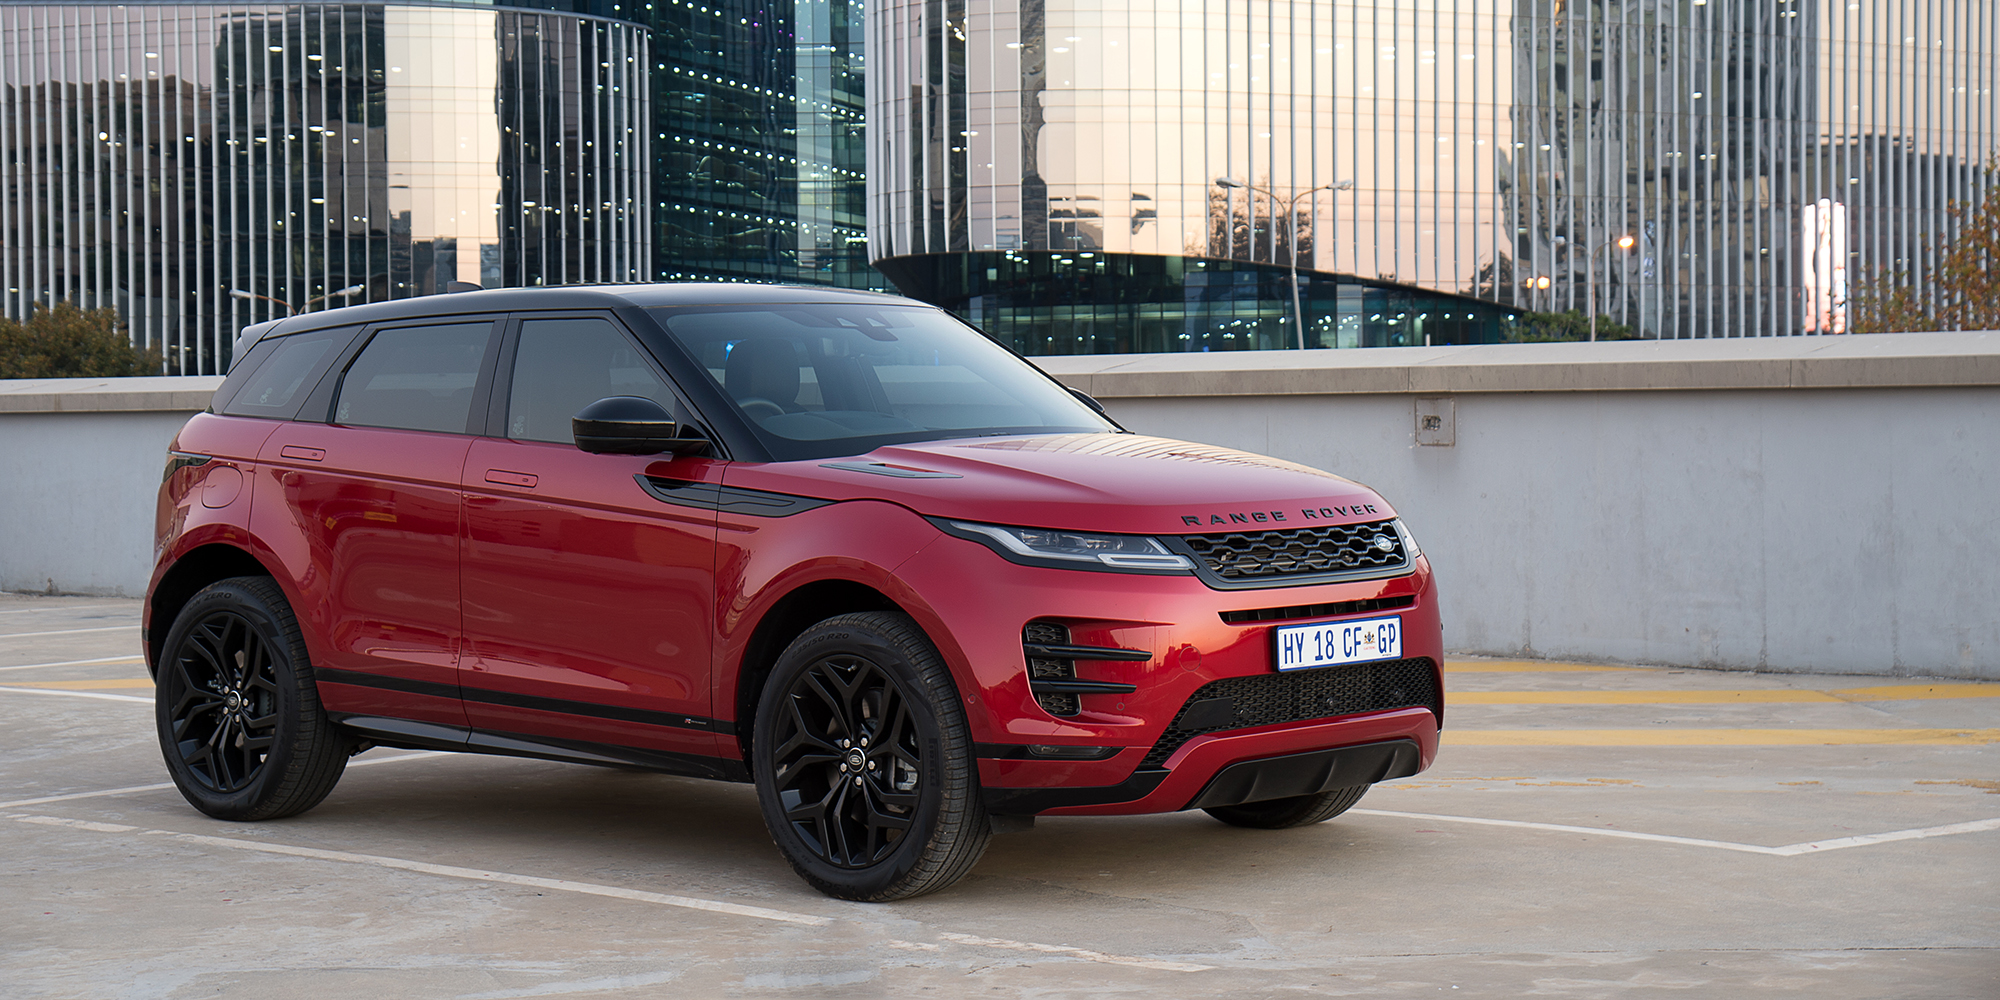 MOTORING: New Range Rover Evoque: Tech-heavy, street savvy